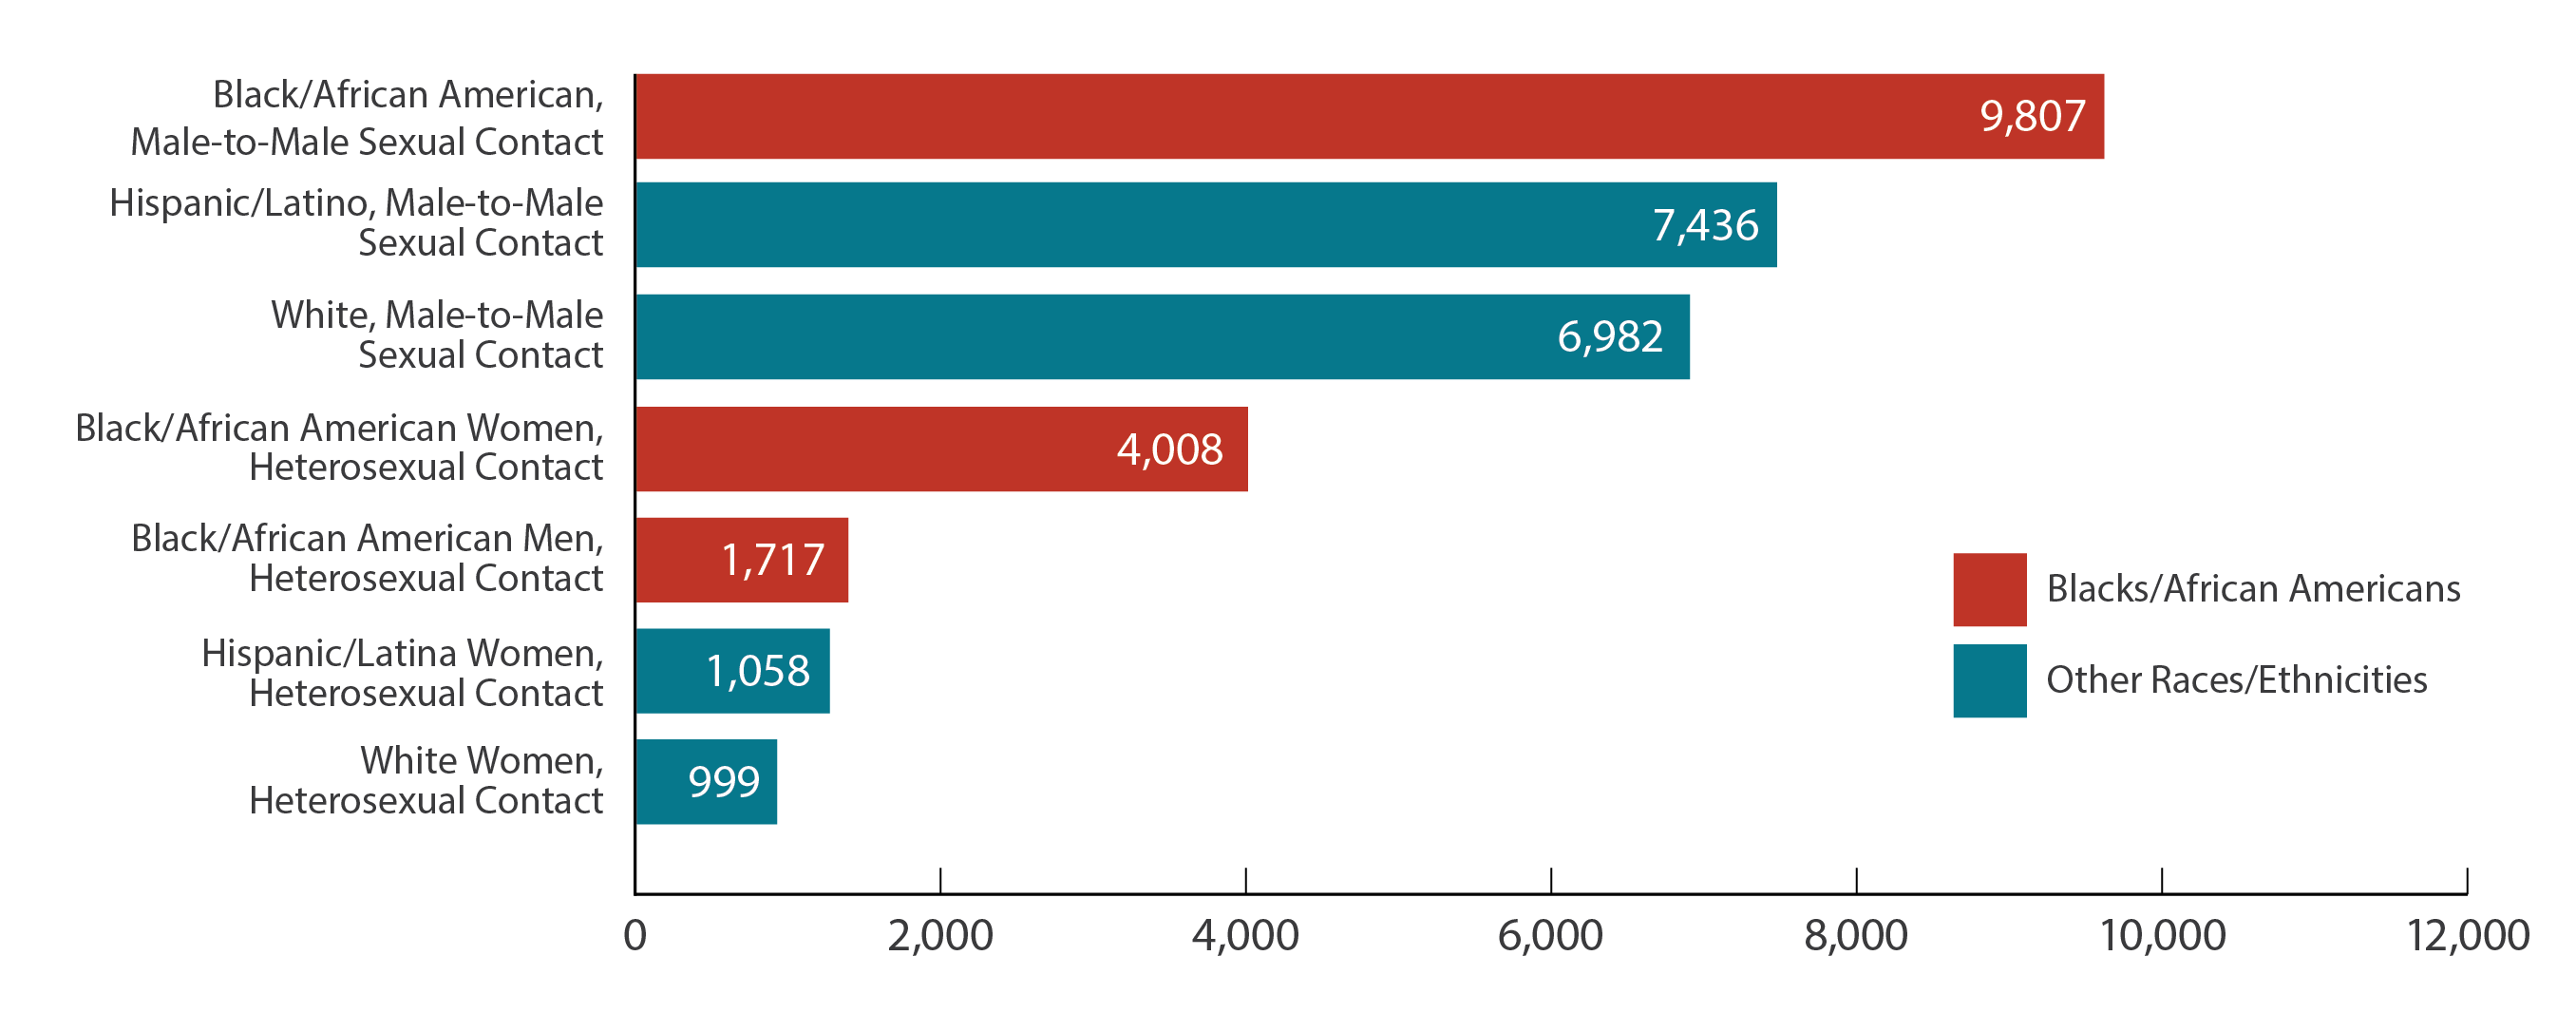 This bar chart shows the estimated new HIV diagnoses for the most-affected subpopulations in the United States and dependent areas in 2017. Black/African American, Male-to-male sexual contact = 9,807; Hispanic/Latino, Male-to-male sexual contact = 7,436; White, Male-to-male sexual contact = 6,982; Black/African American Women, Heterosexual contact = 4,008; Black/African American Men, Heterosexual contact = 1,717; Hispanic Women/Latinas, Heterosexual contact = 1,058; White Women, Heterosexual contact = 999.